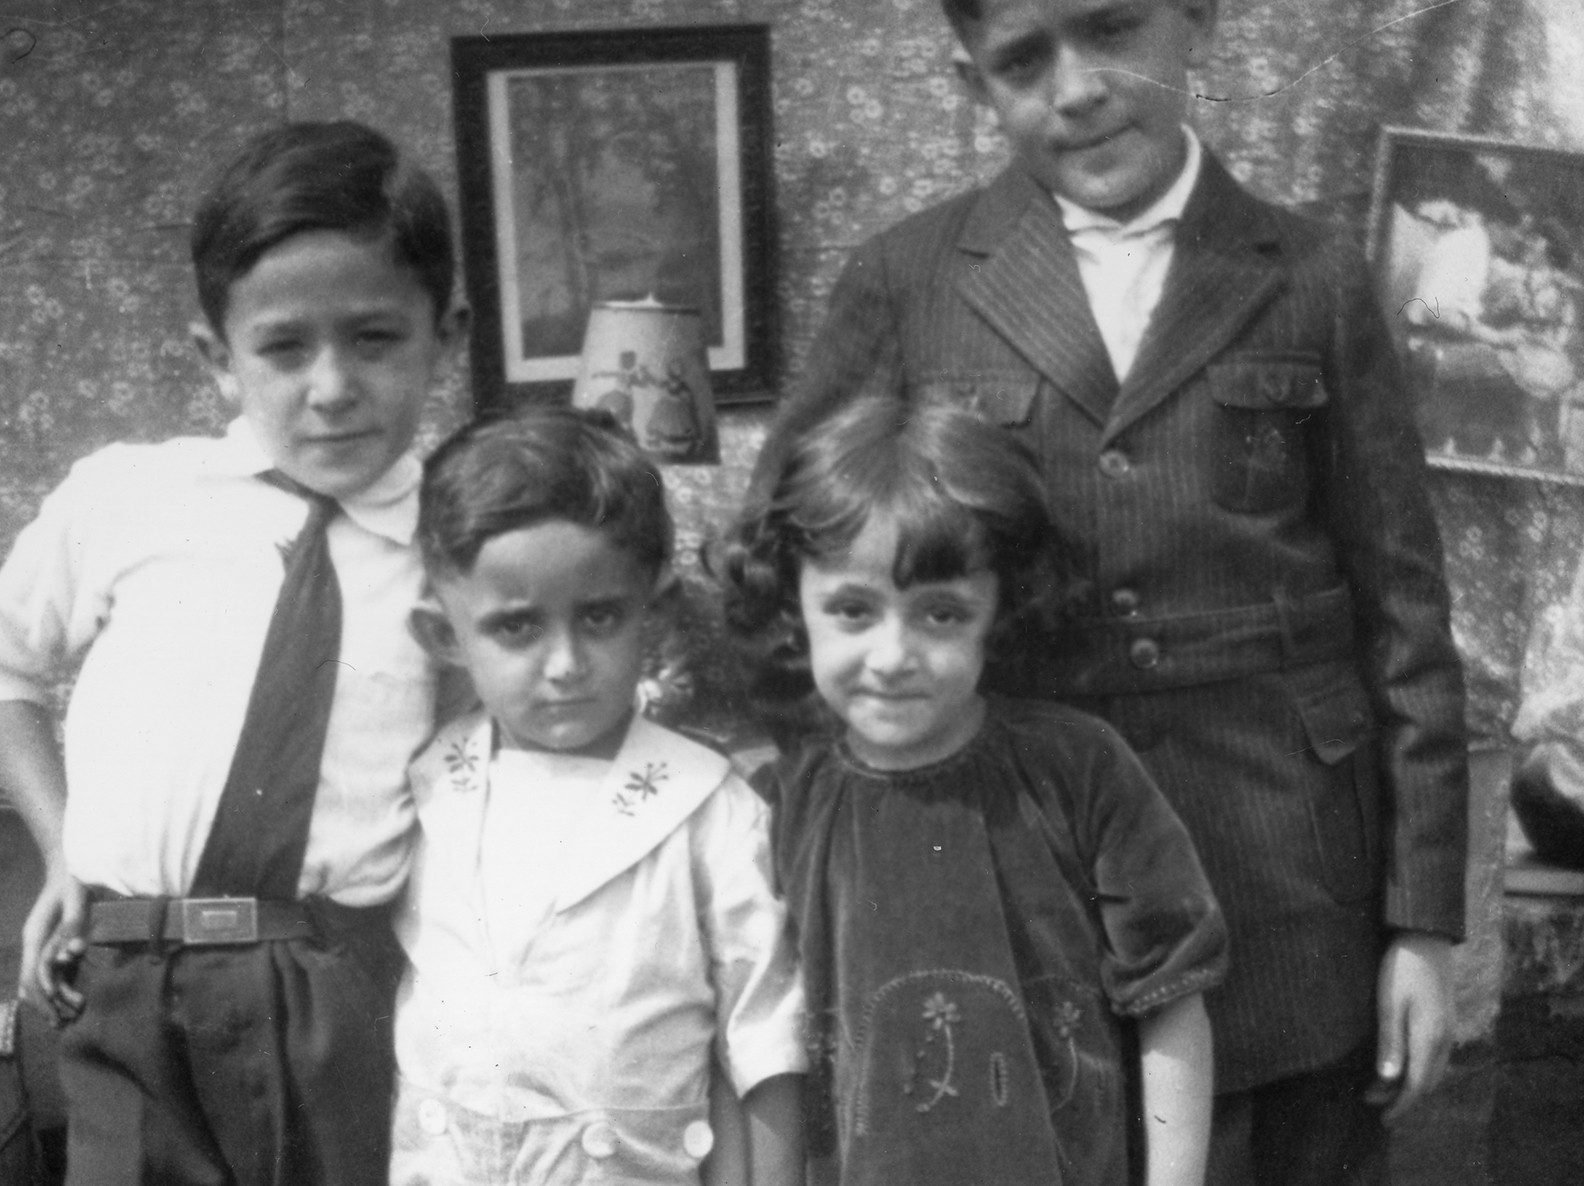 Black and white photo of four children, two older and two younger, inside an apartment posing together in dress clothes